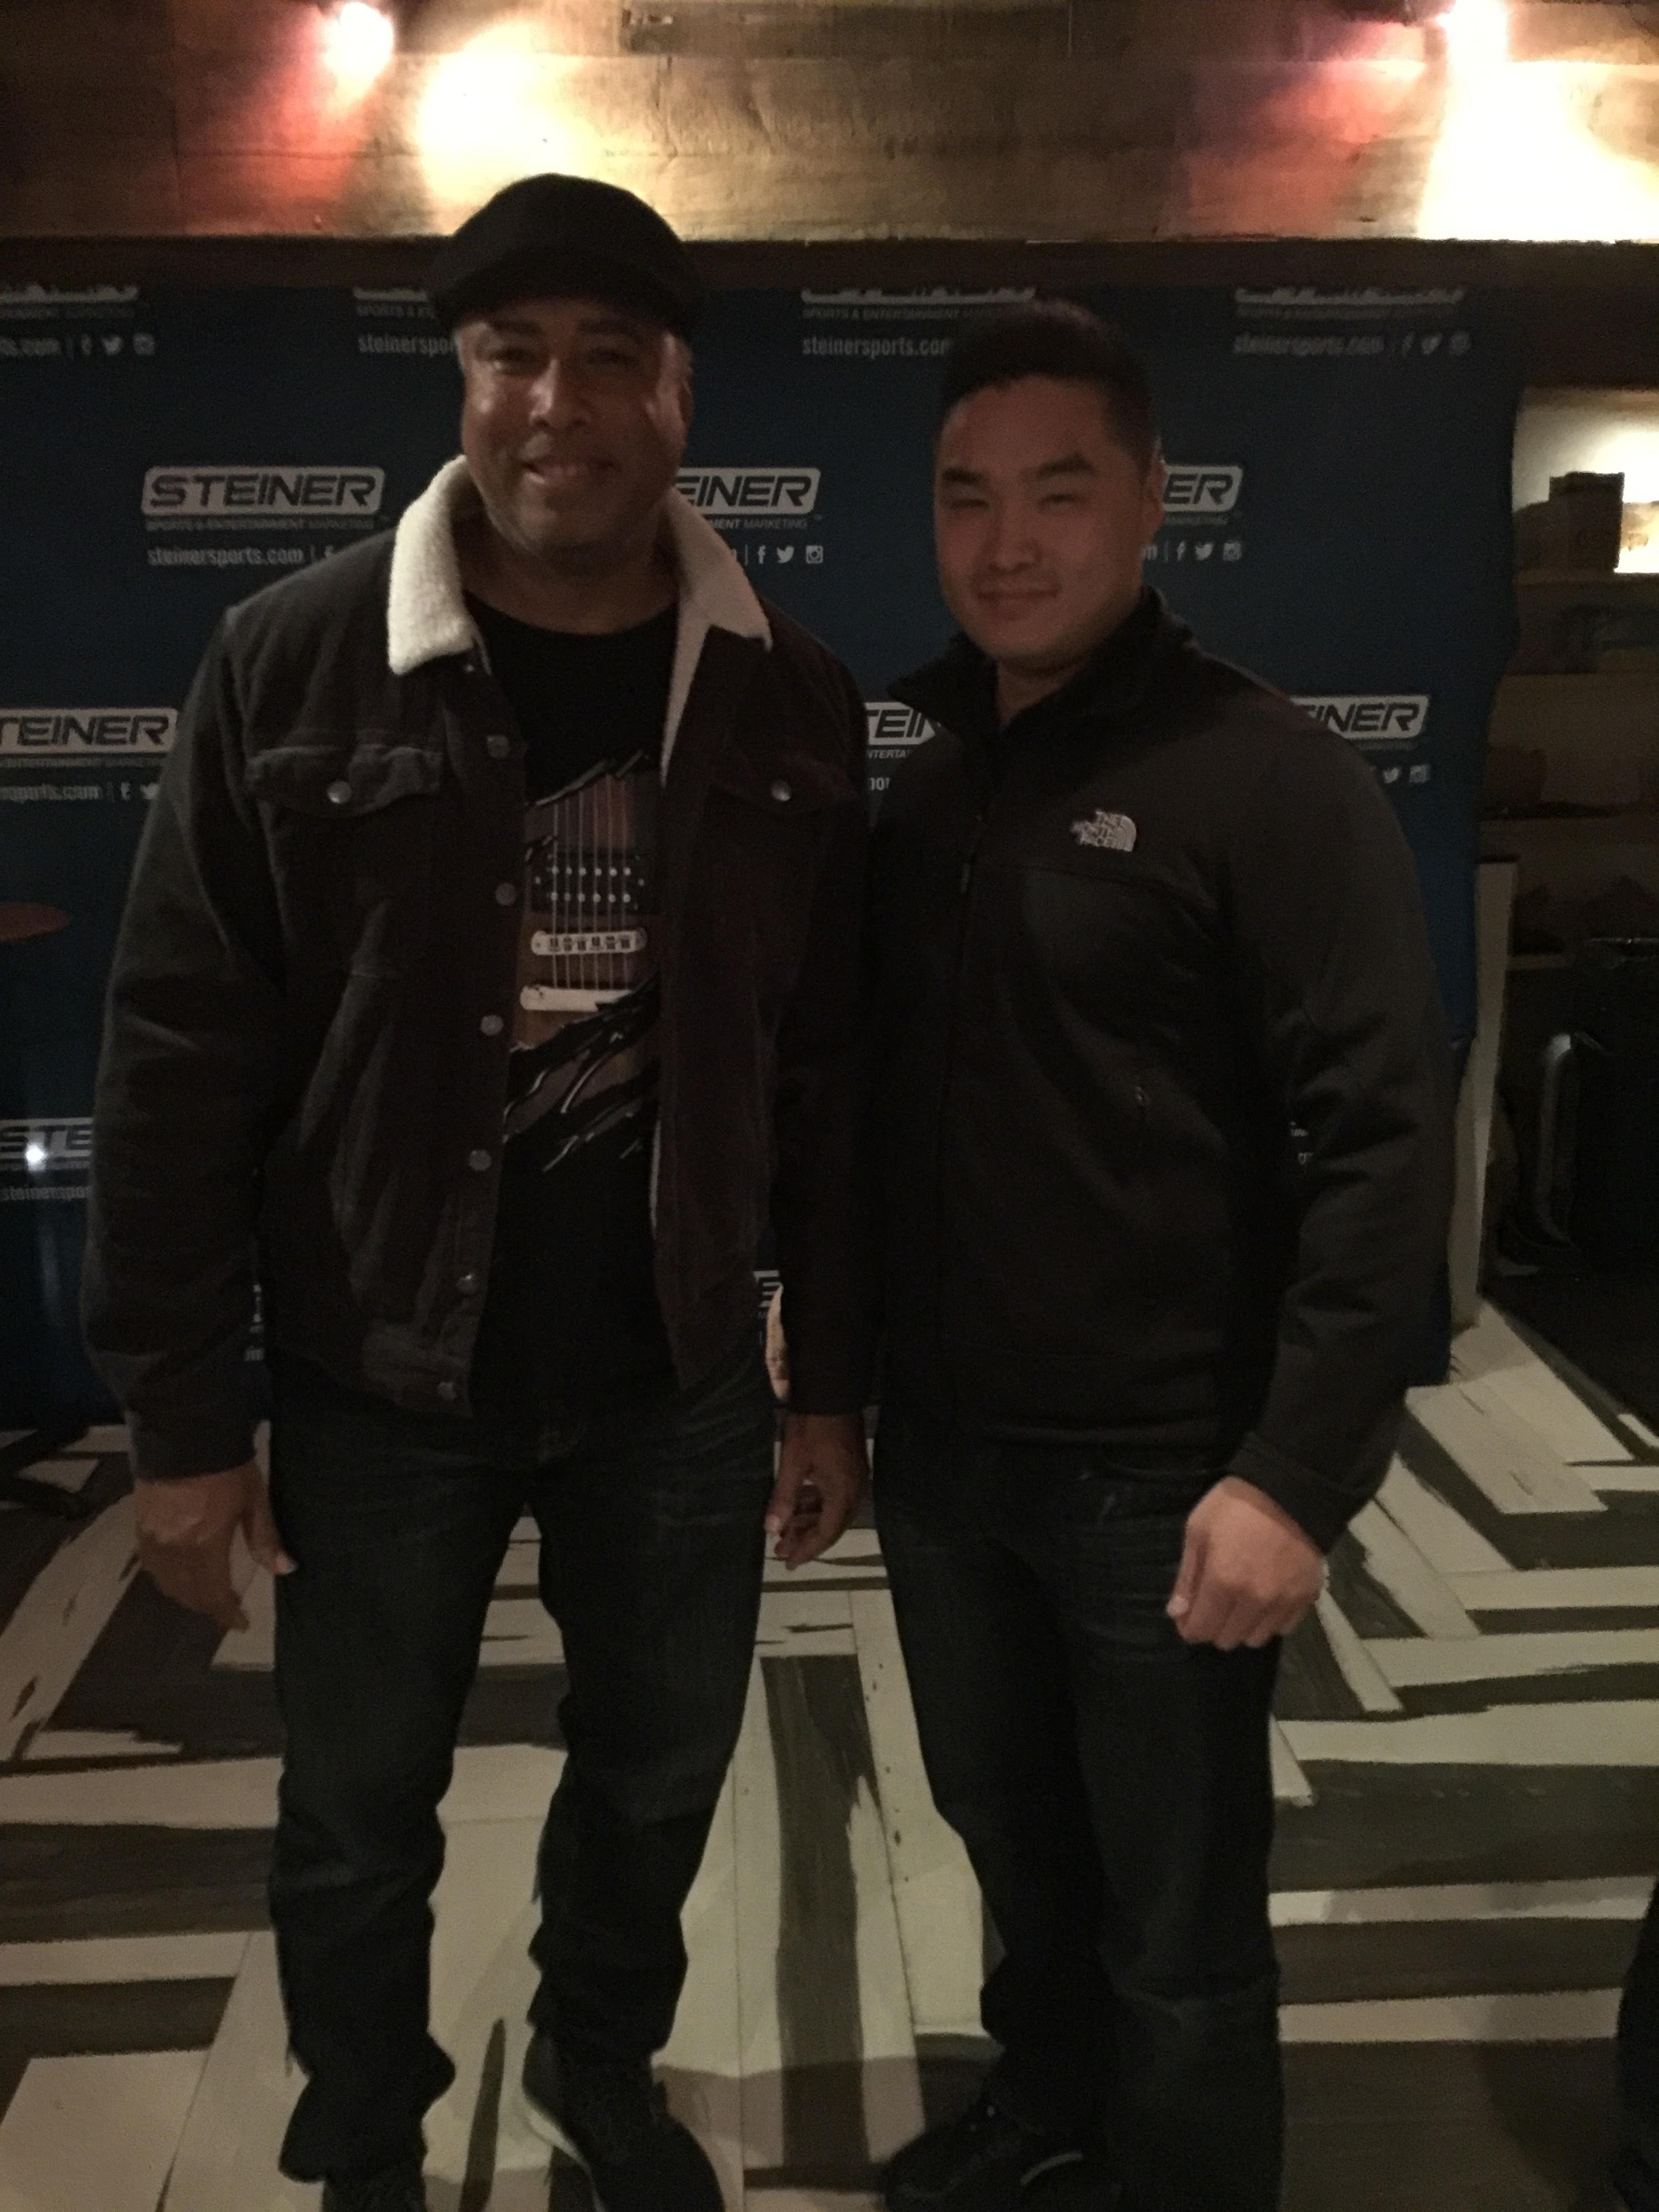 With Yankees Bernie Williams